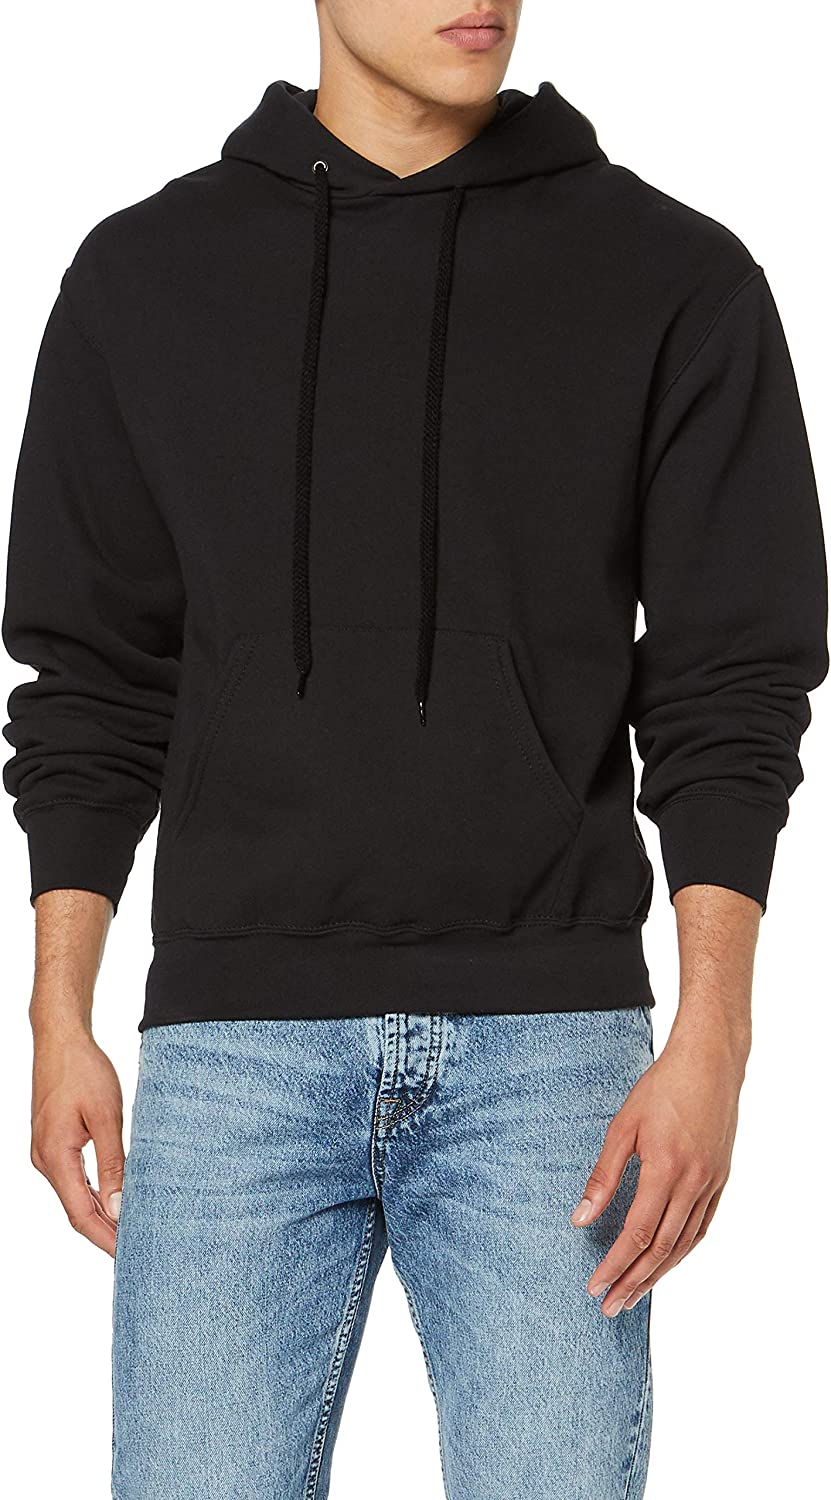 Fruit of the Loom 12208B, Sudadera con Capucha Para Hombre